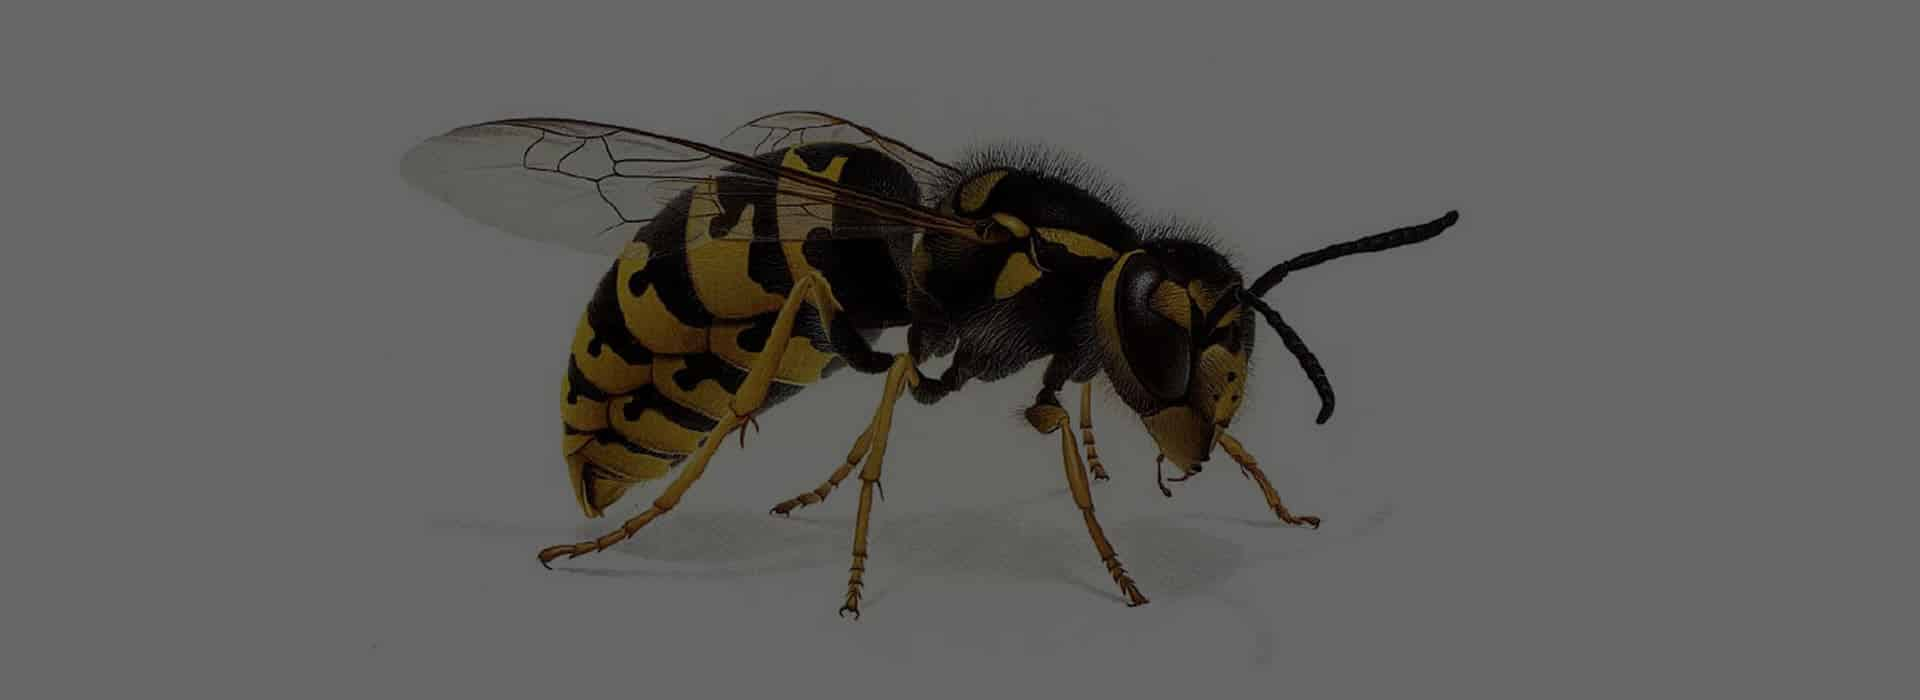 Pest-Control-Leigh-Wasp-Nest-Removal